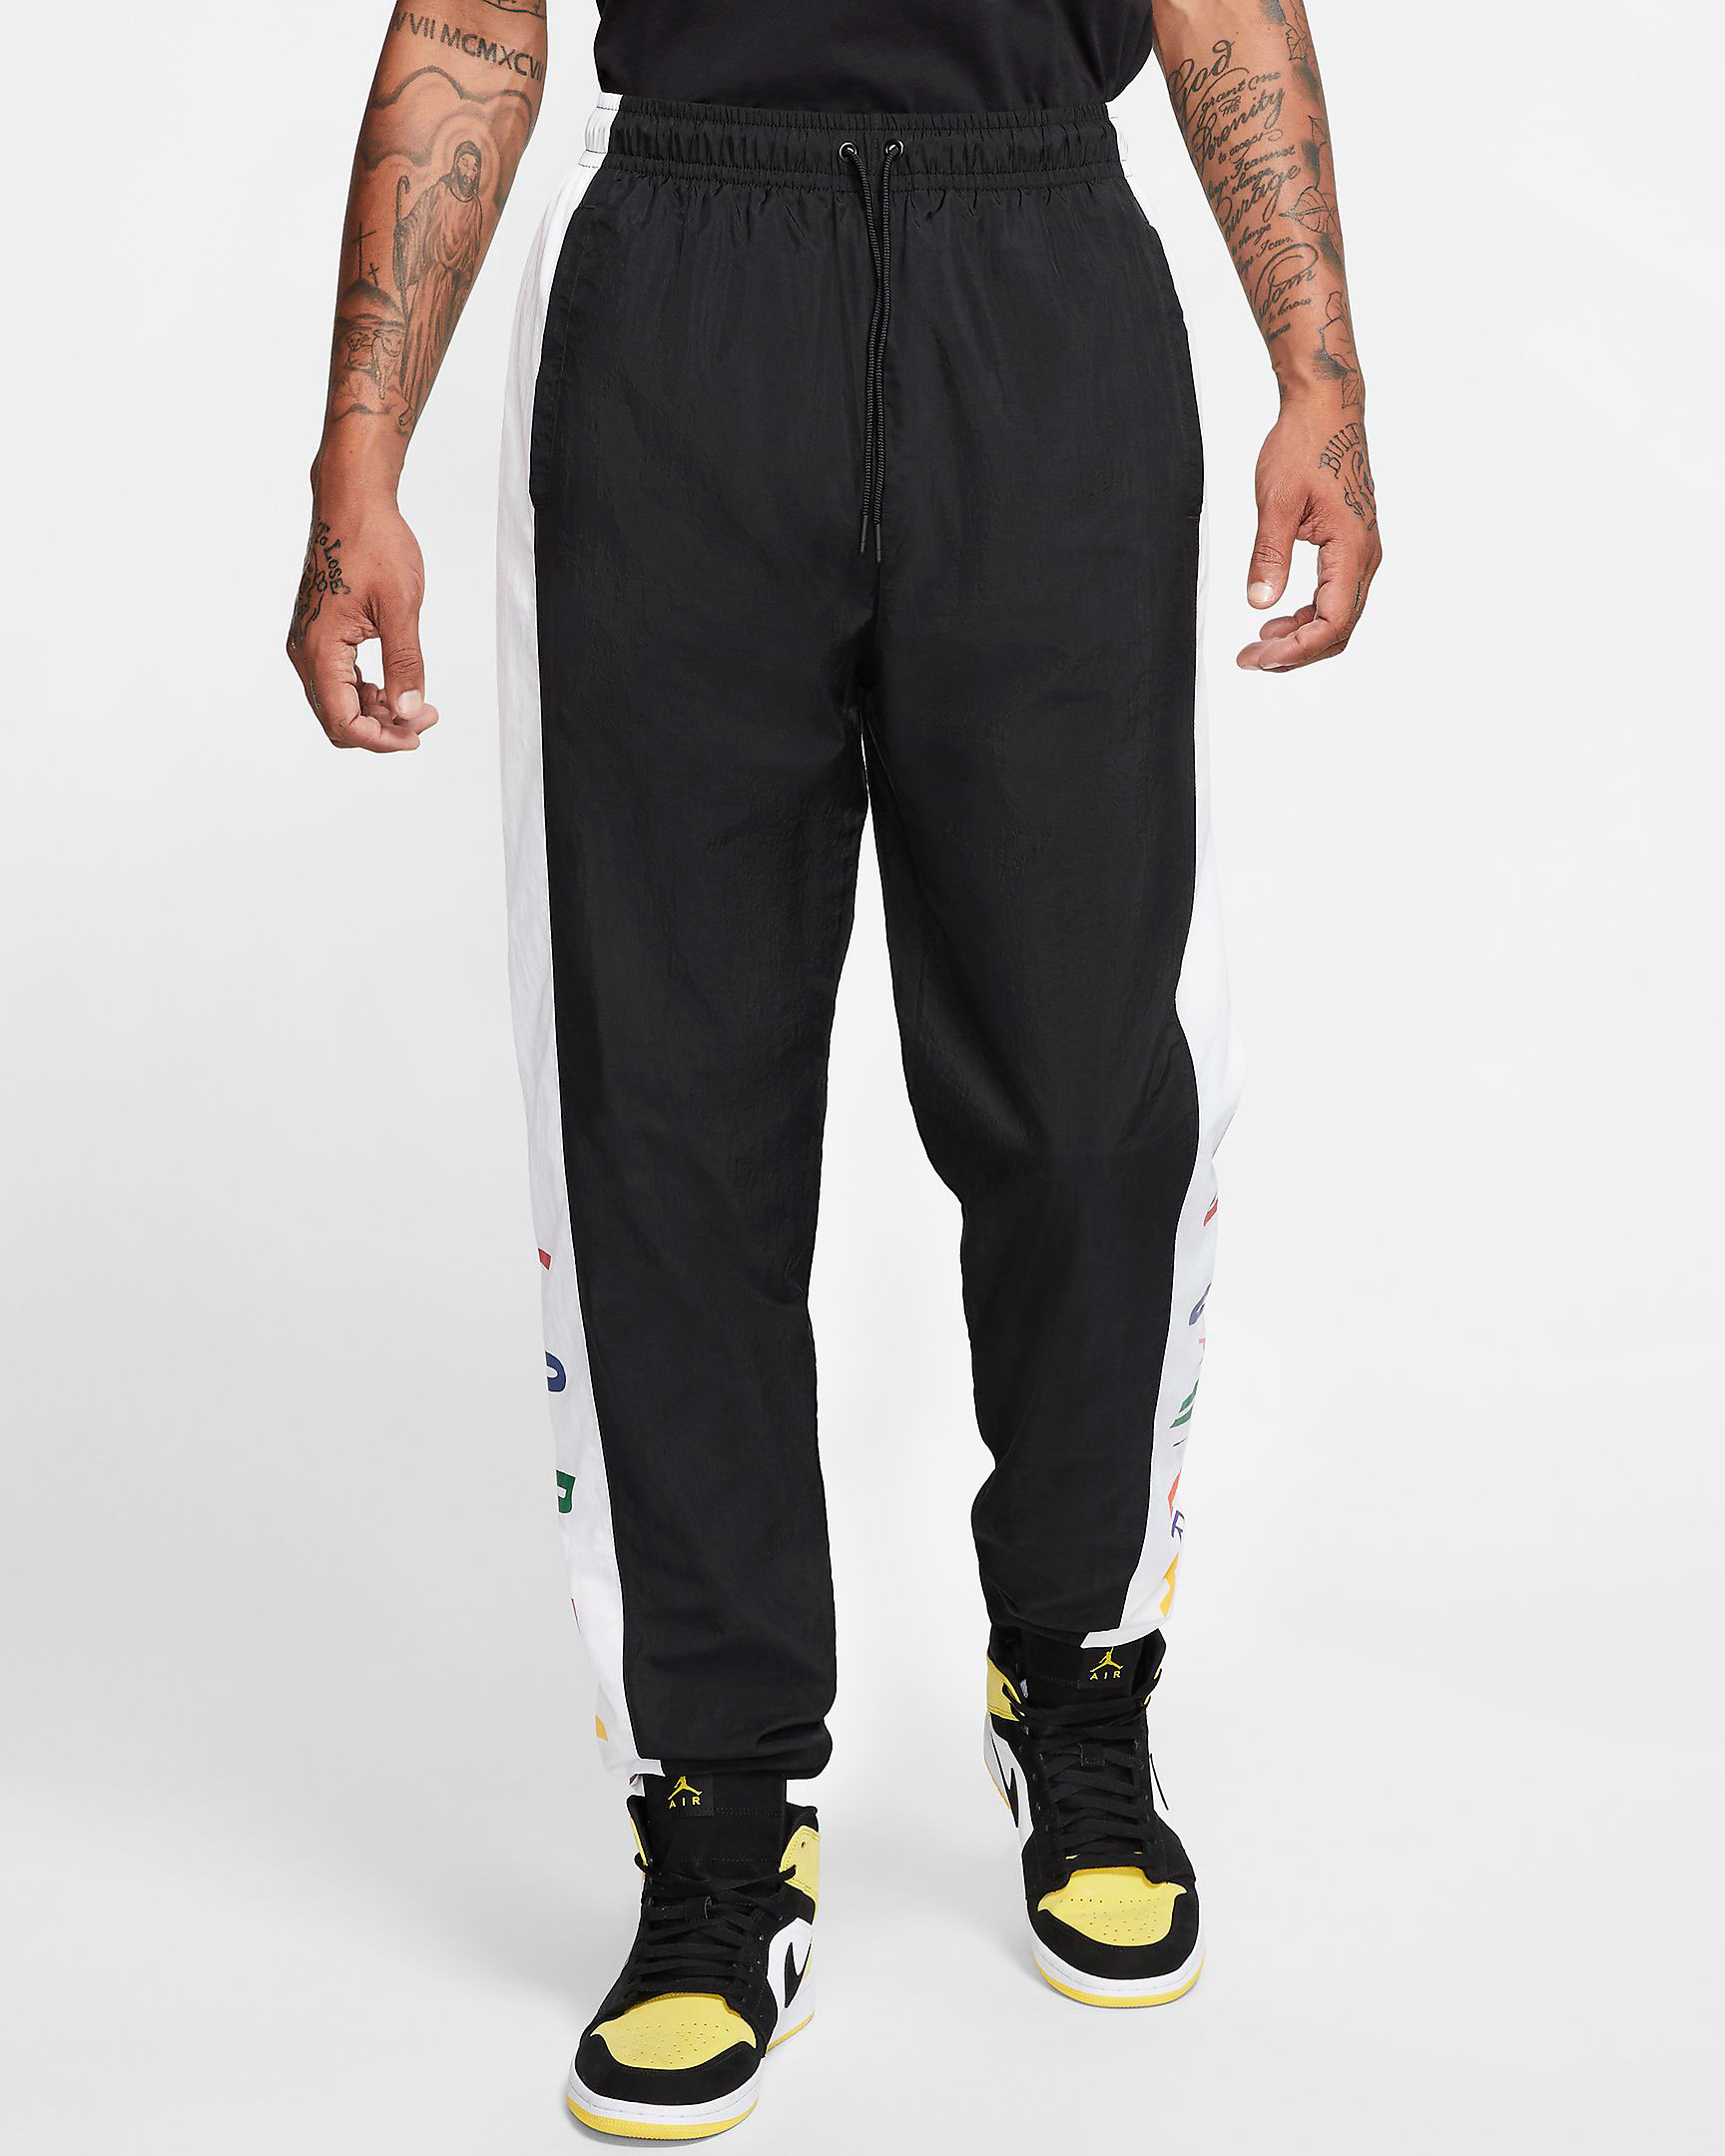 jordan-sport-dna-multi-color-pants-1